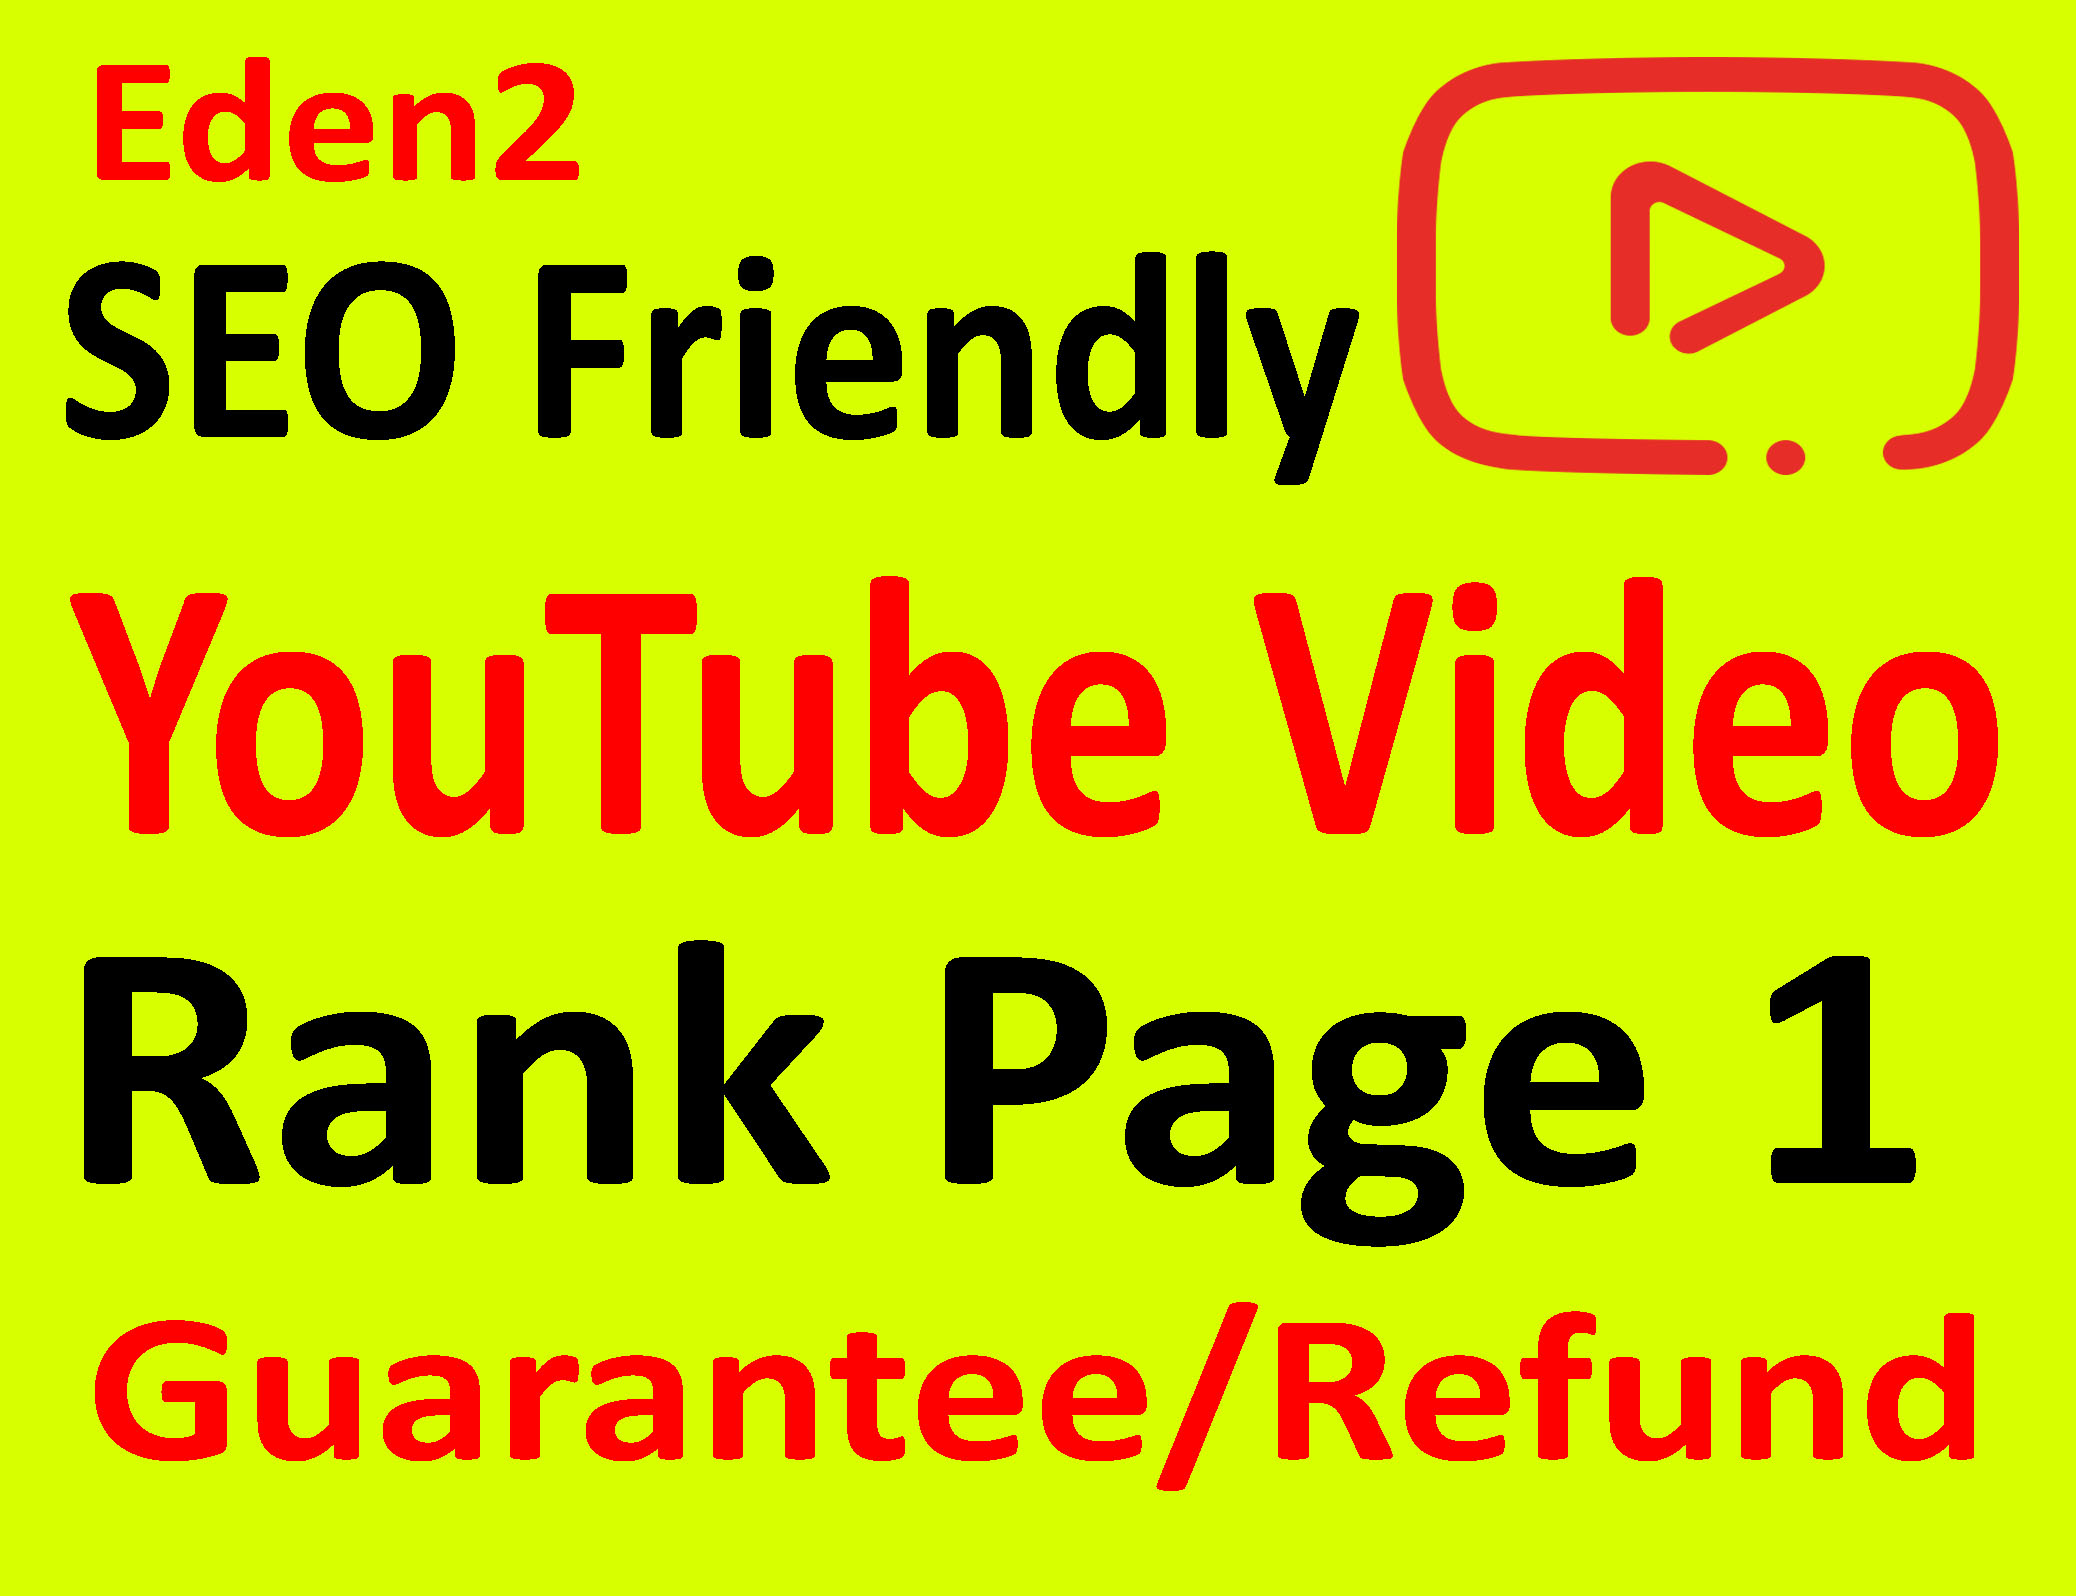 YouTube VIDEO TOP 3 GUARANTEED Update September 2018 - Full Refund Guarantee